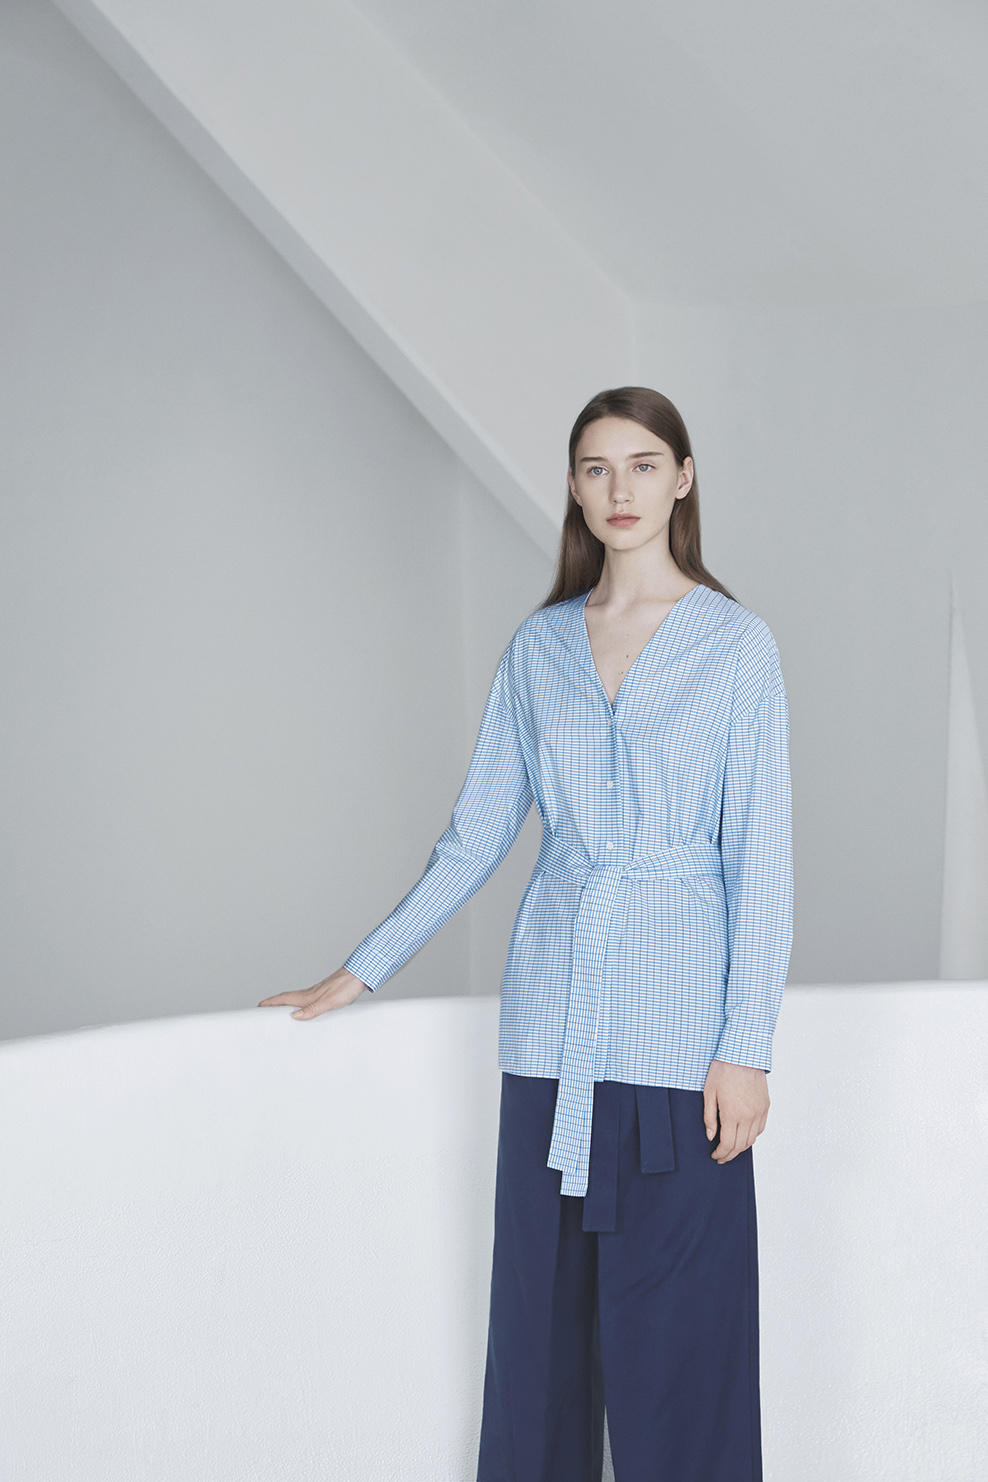 cos-agnes-martin-guggenheim-fw2016-lookbook-mens-womens-10